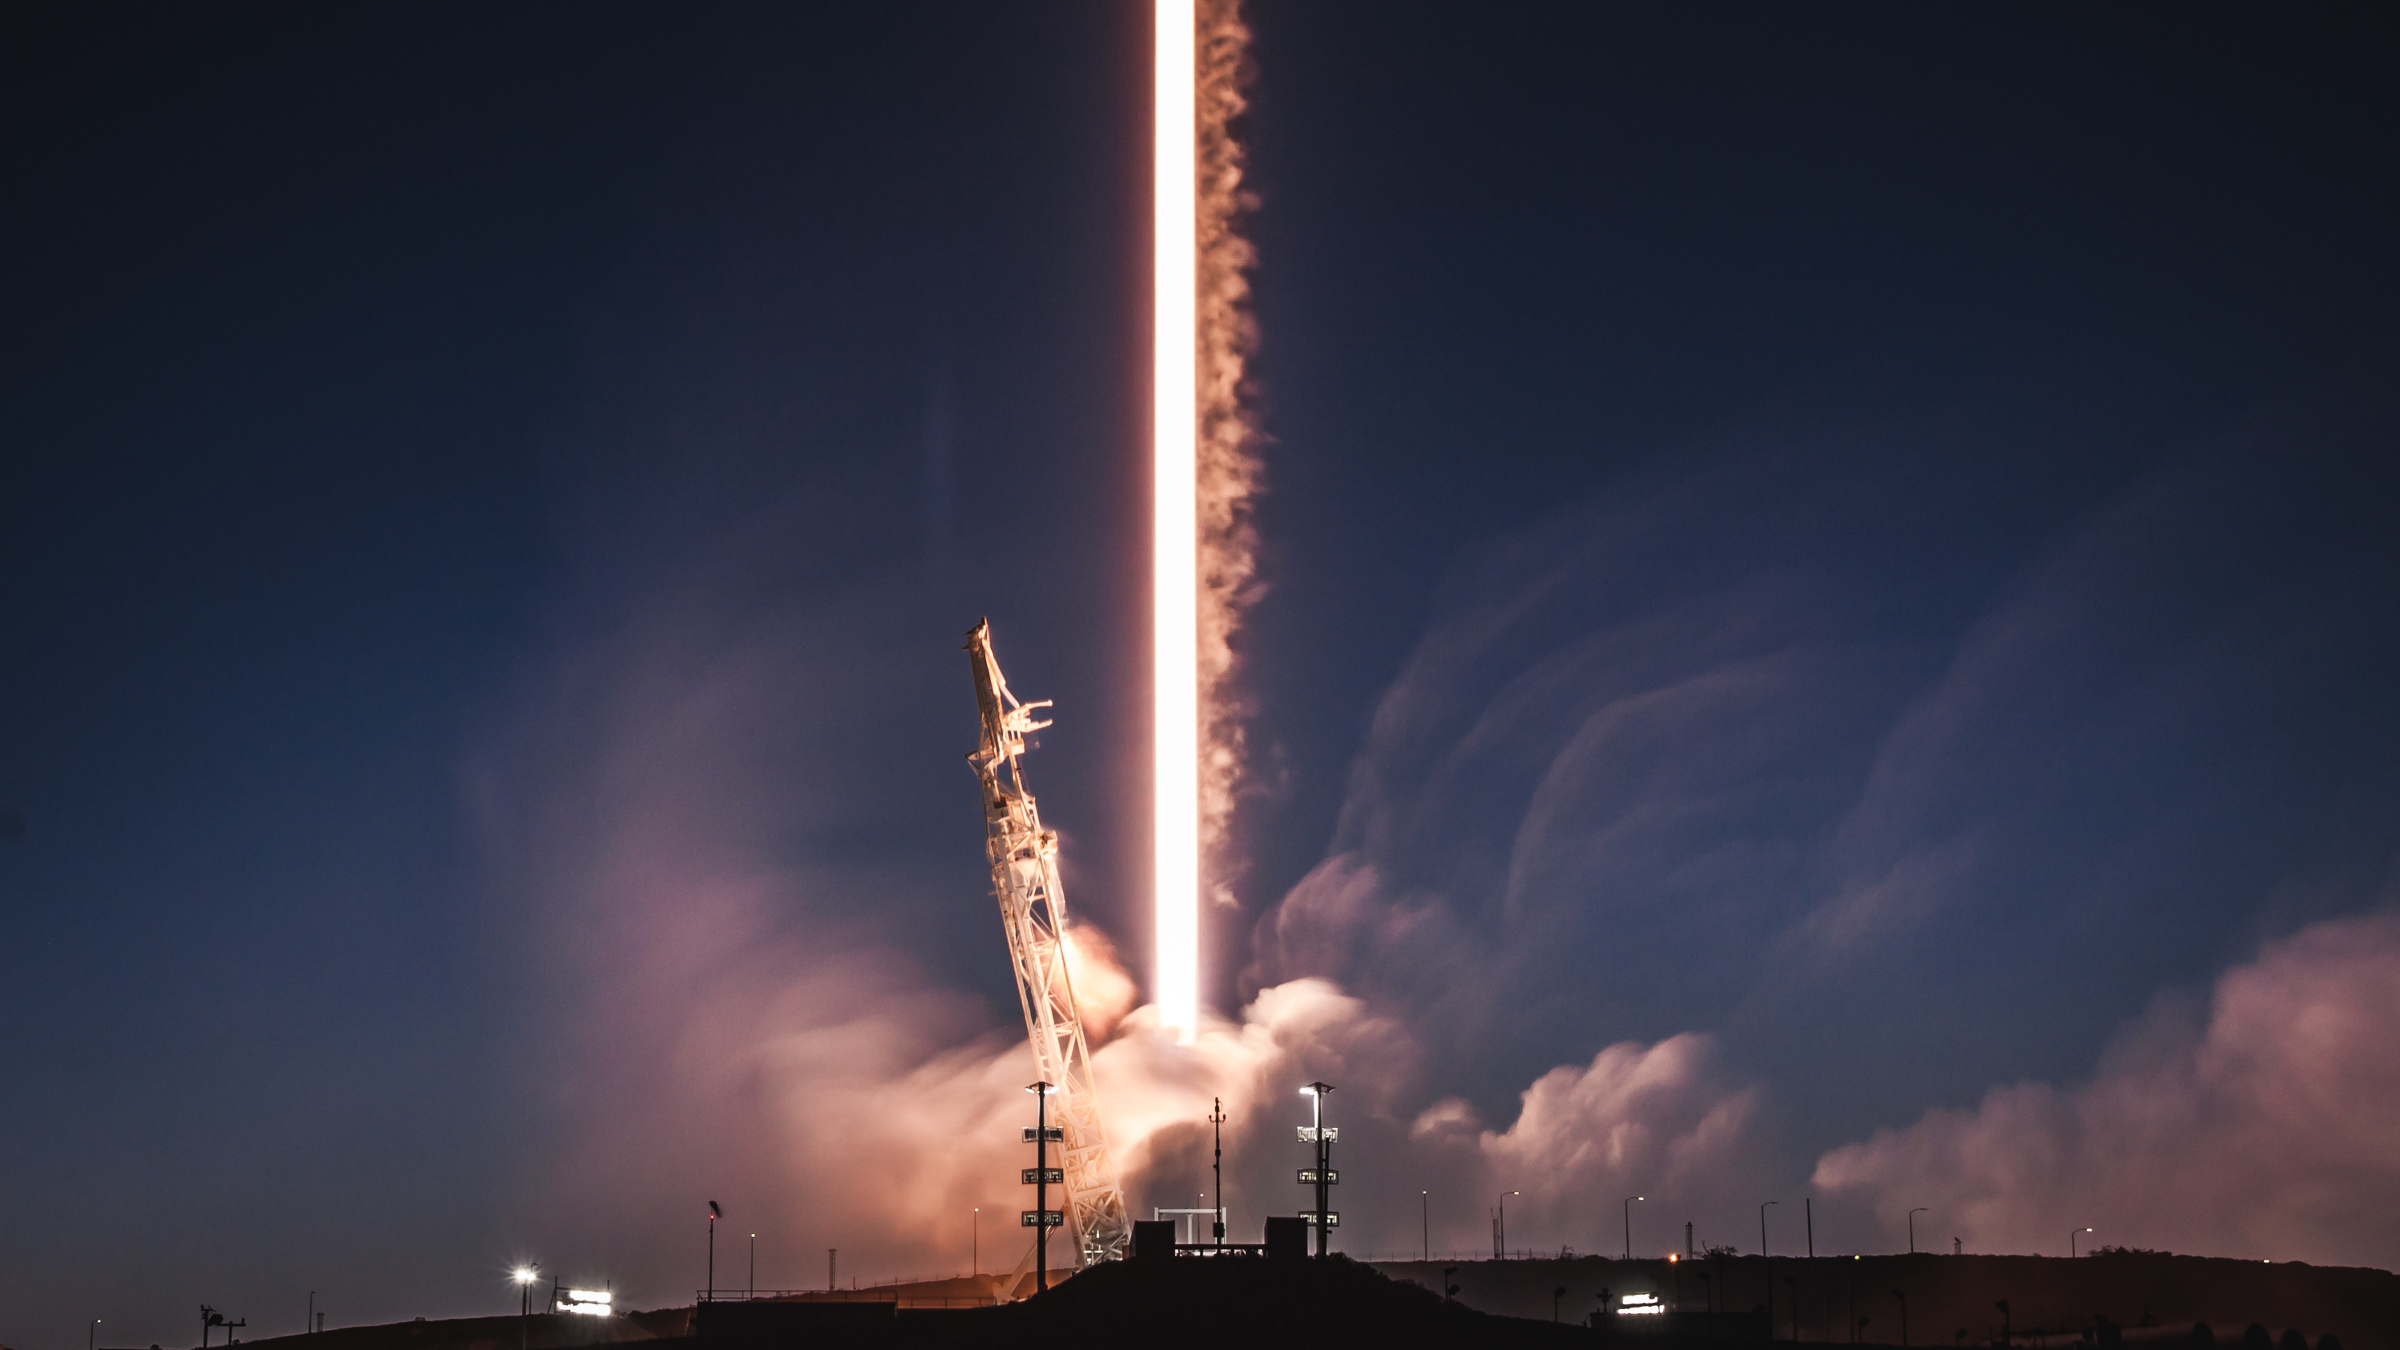 Elon Musk S Spacex Has Launched Its 50th Falcon 9 Rocket To Orbit